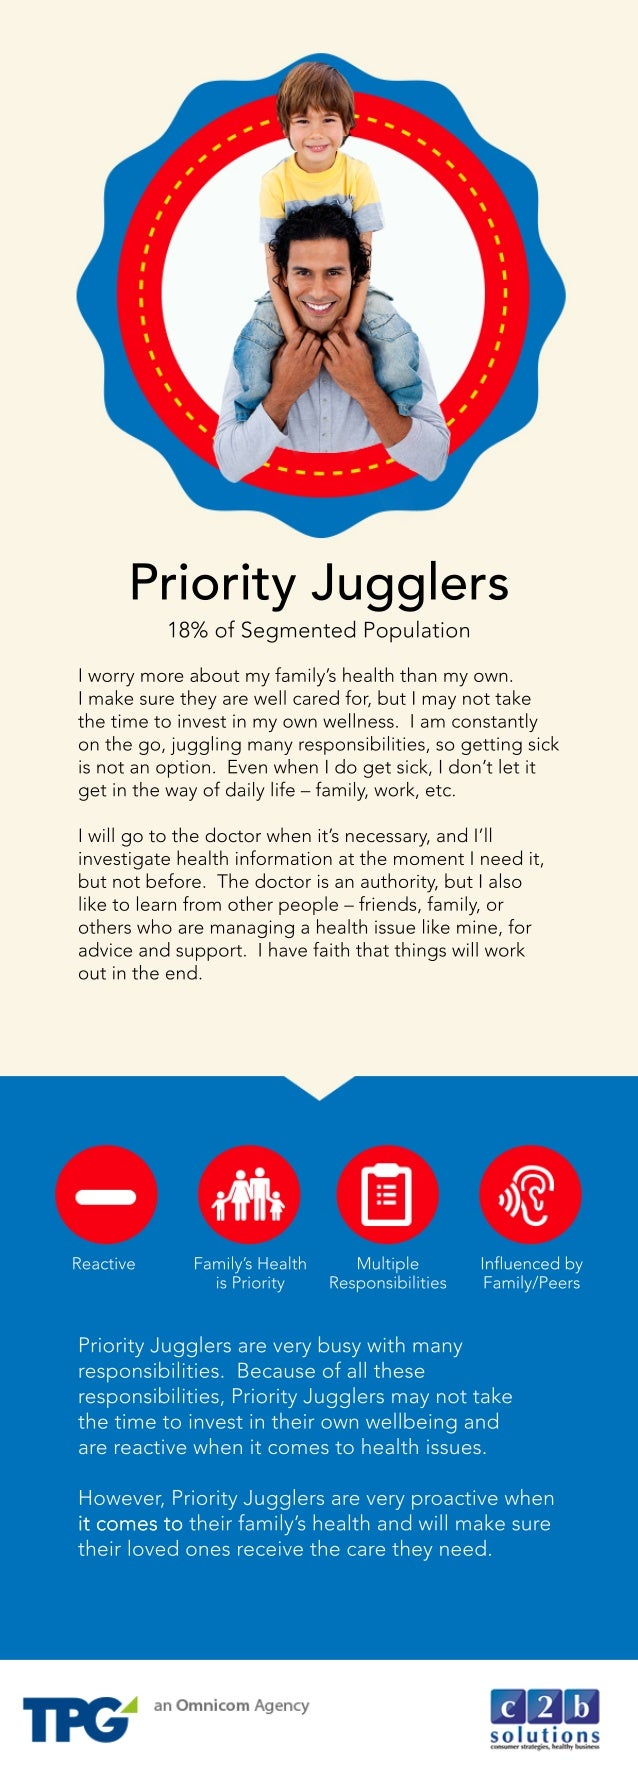 Priority Jugglers Profile: Psychographic Segmentation and the Health Care Consumer